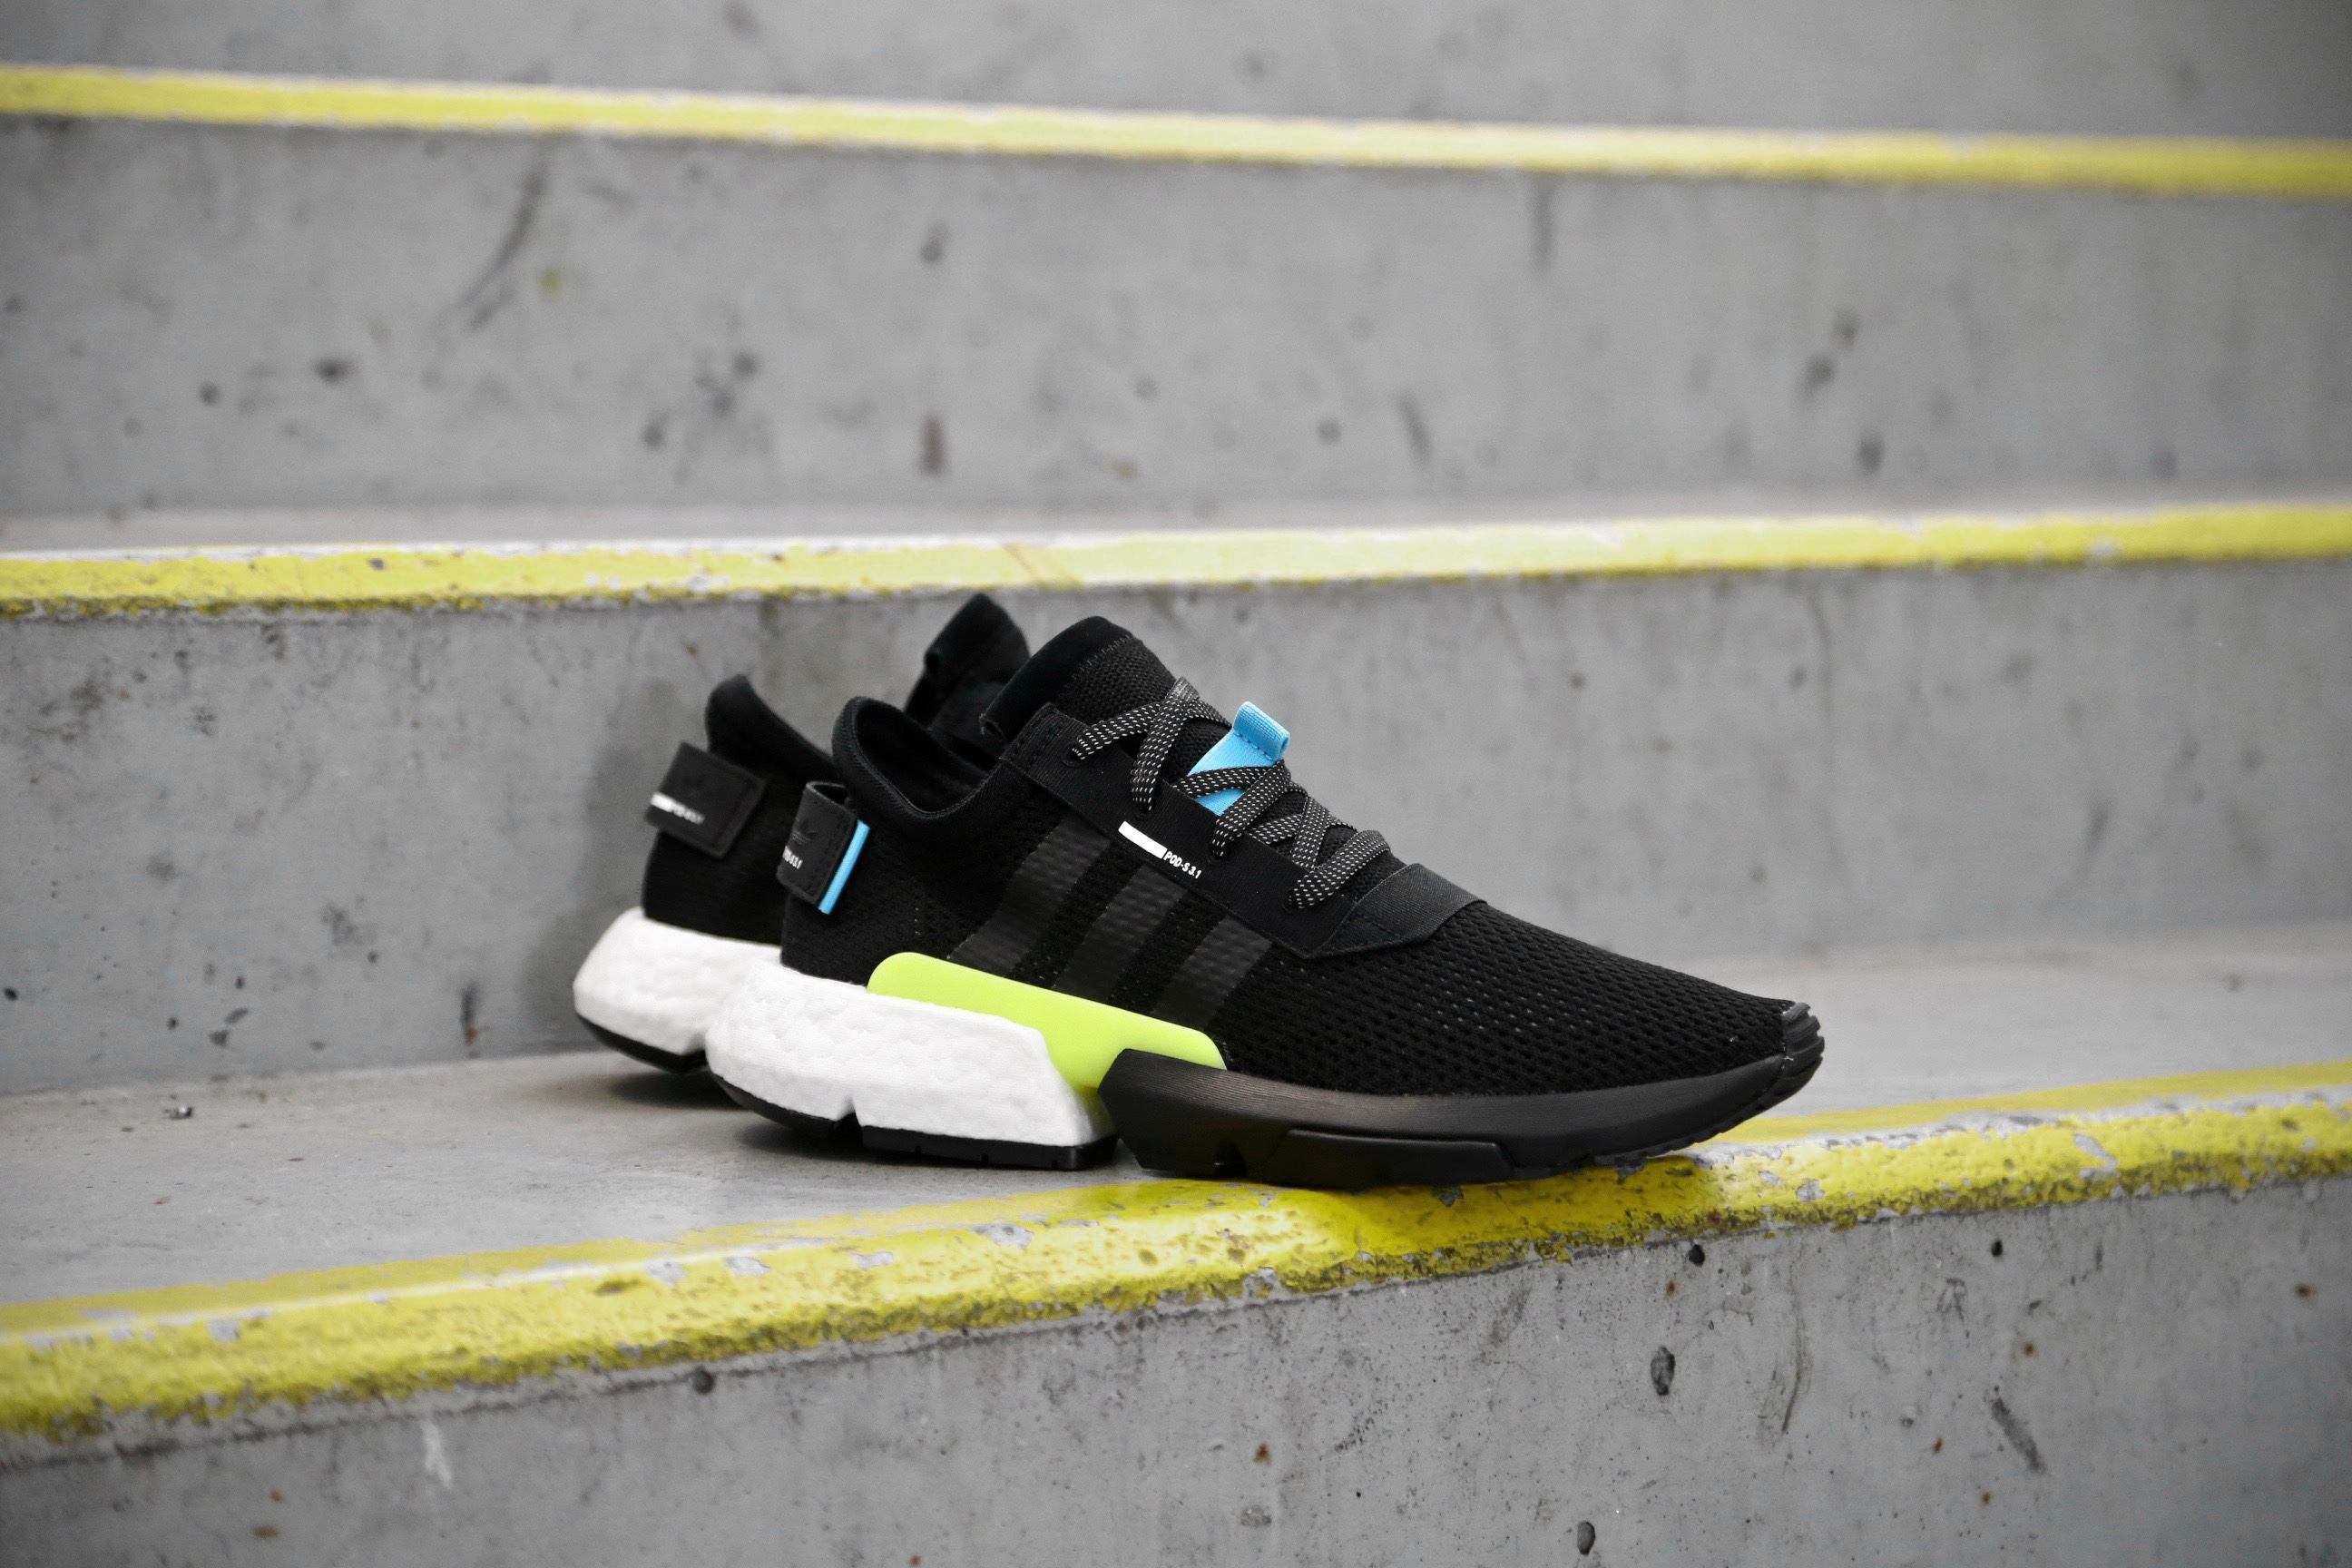 232c2df3faec adidas Originals POD-S3.1 – Core Black   Ftwr White – STASP